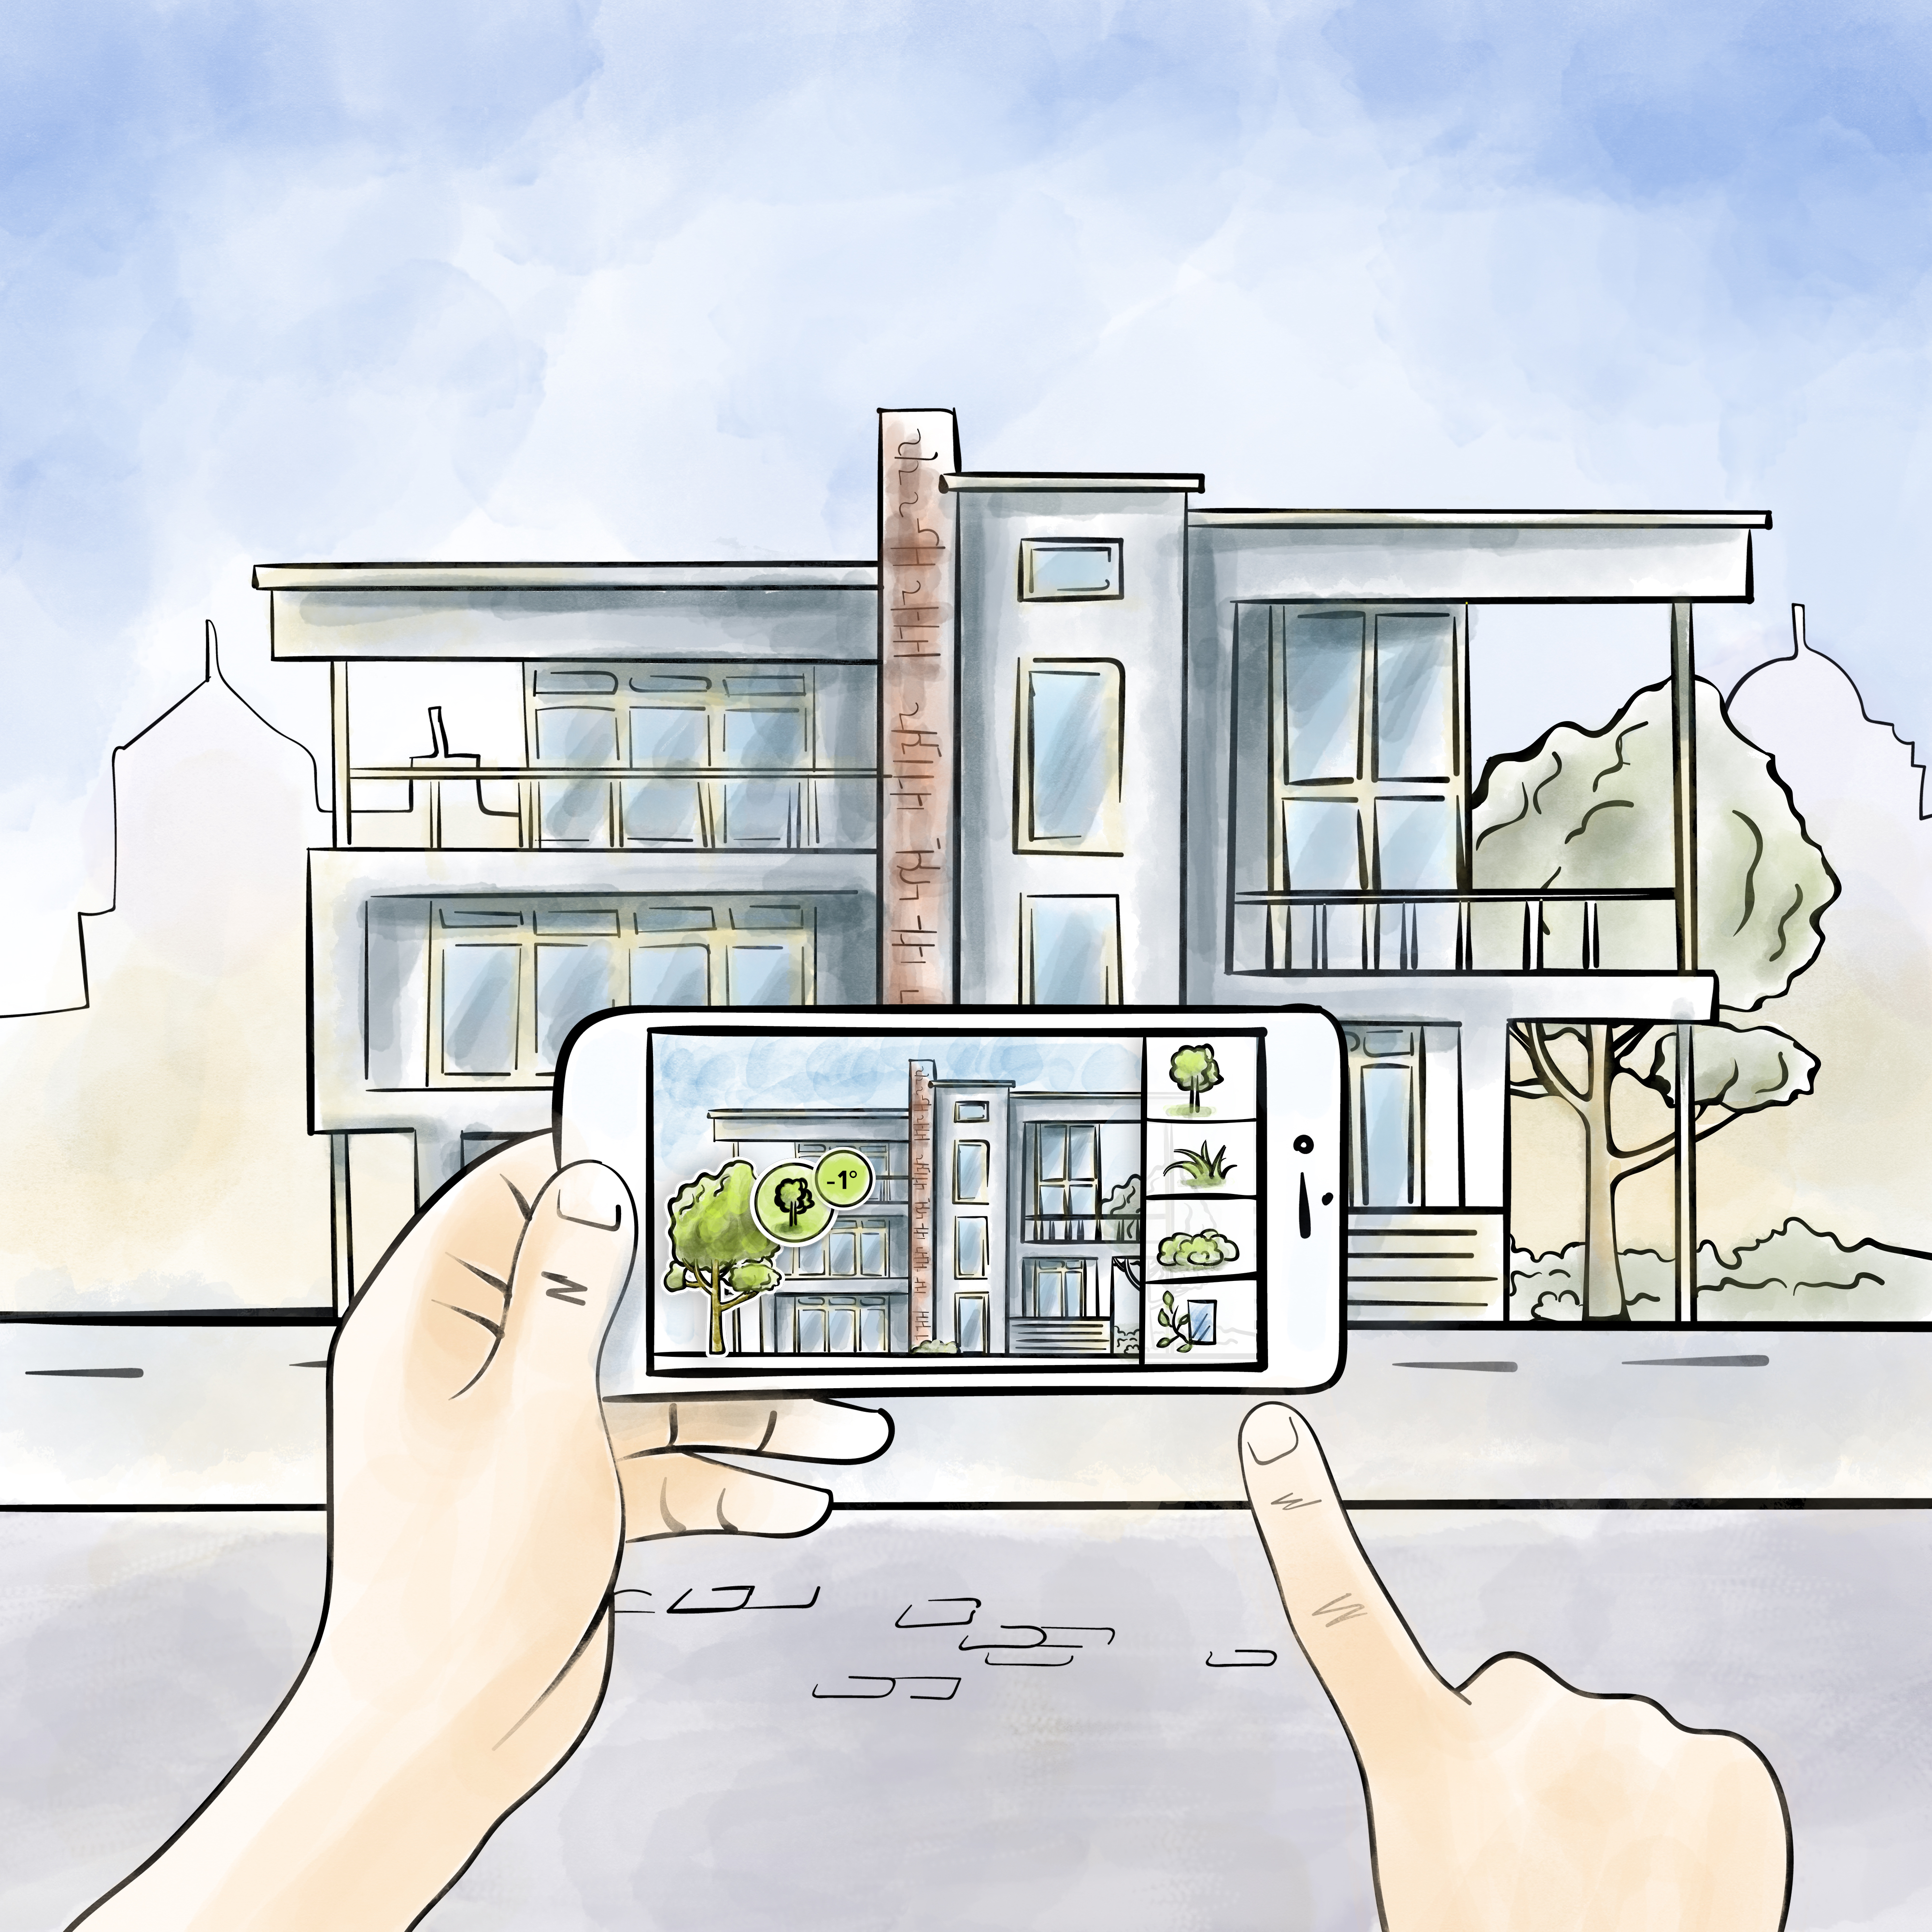 Drawing of a Smartphone in AR Mode in front of a building